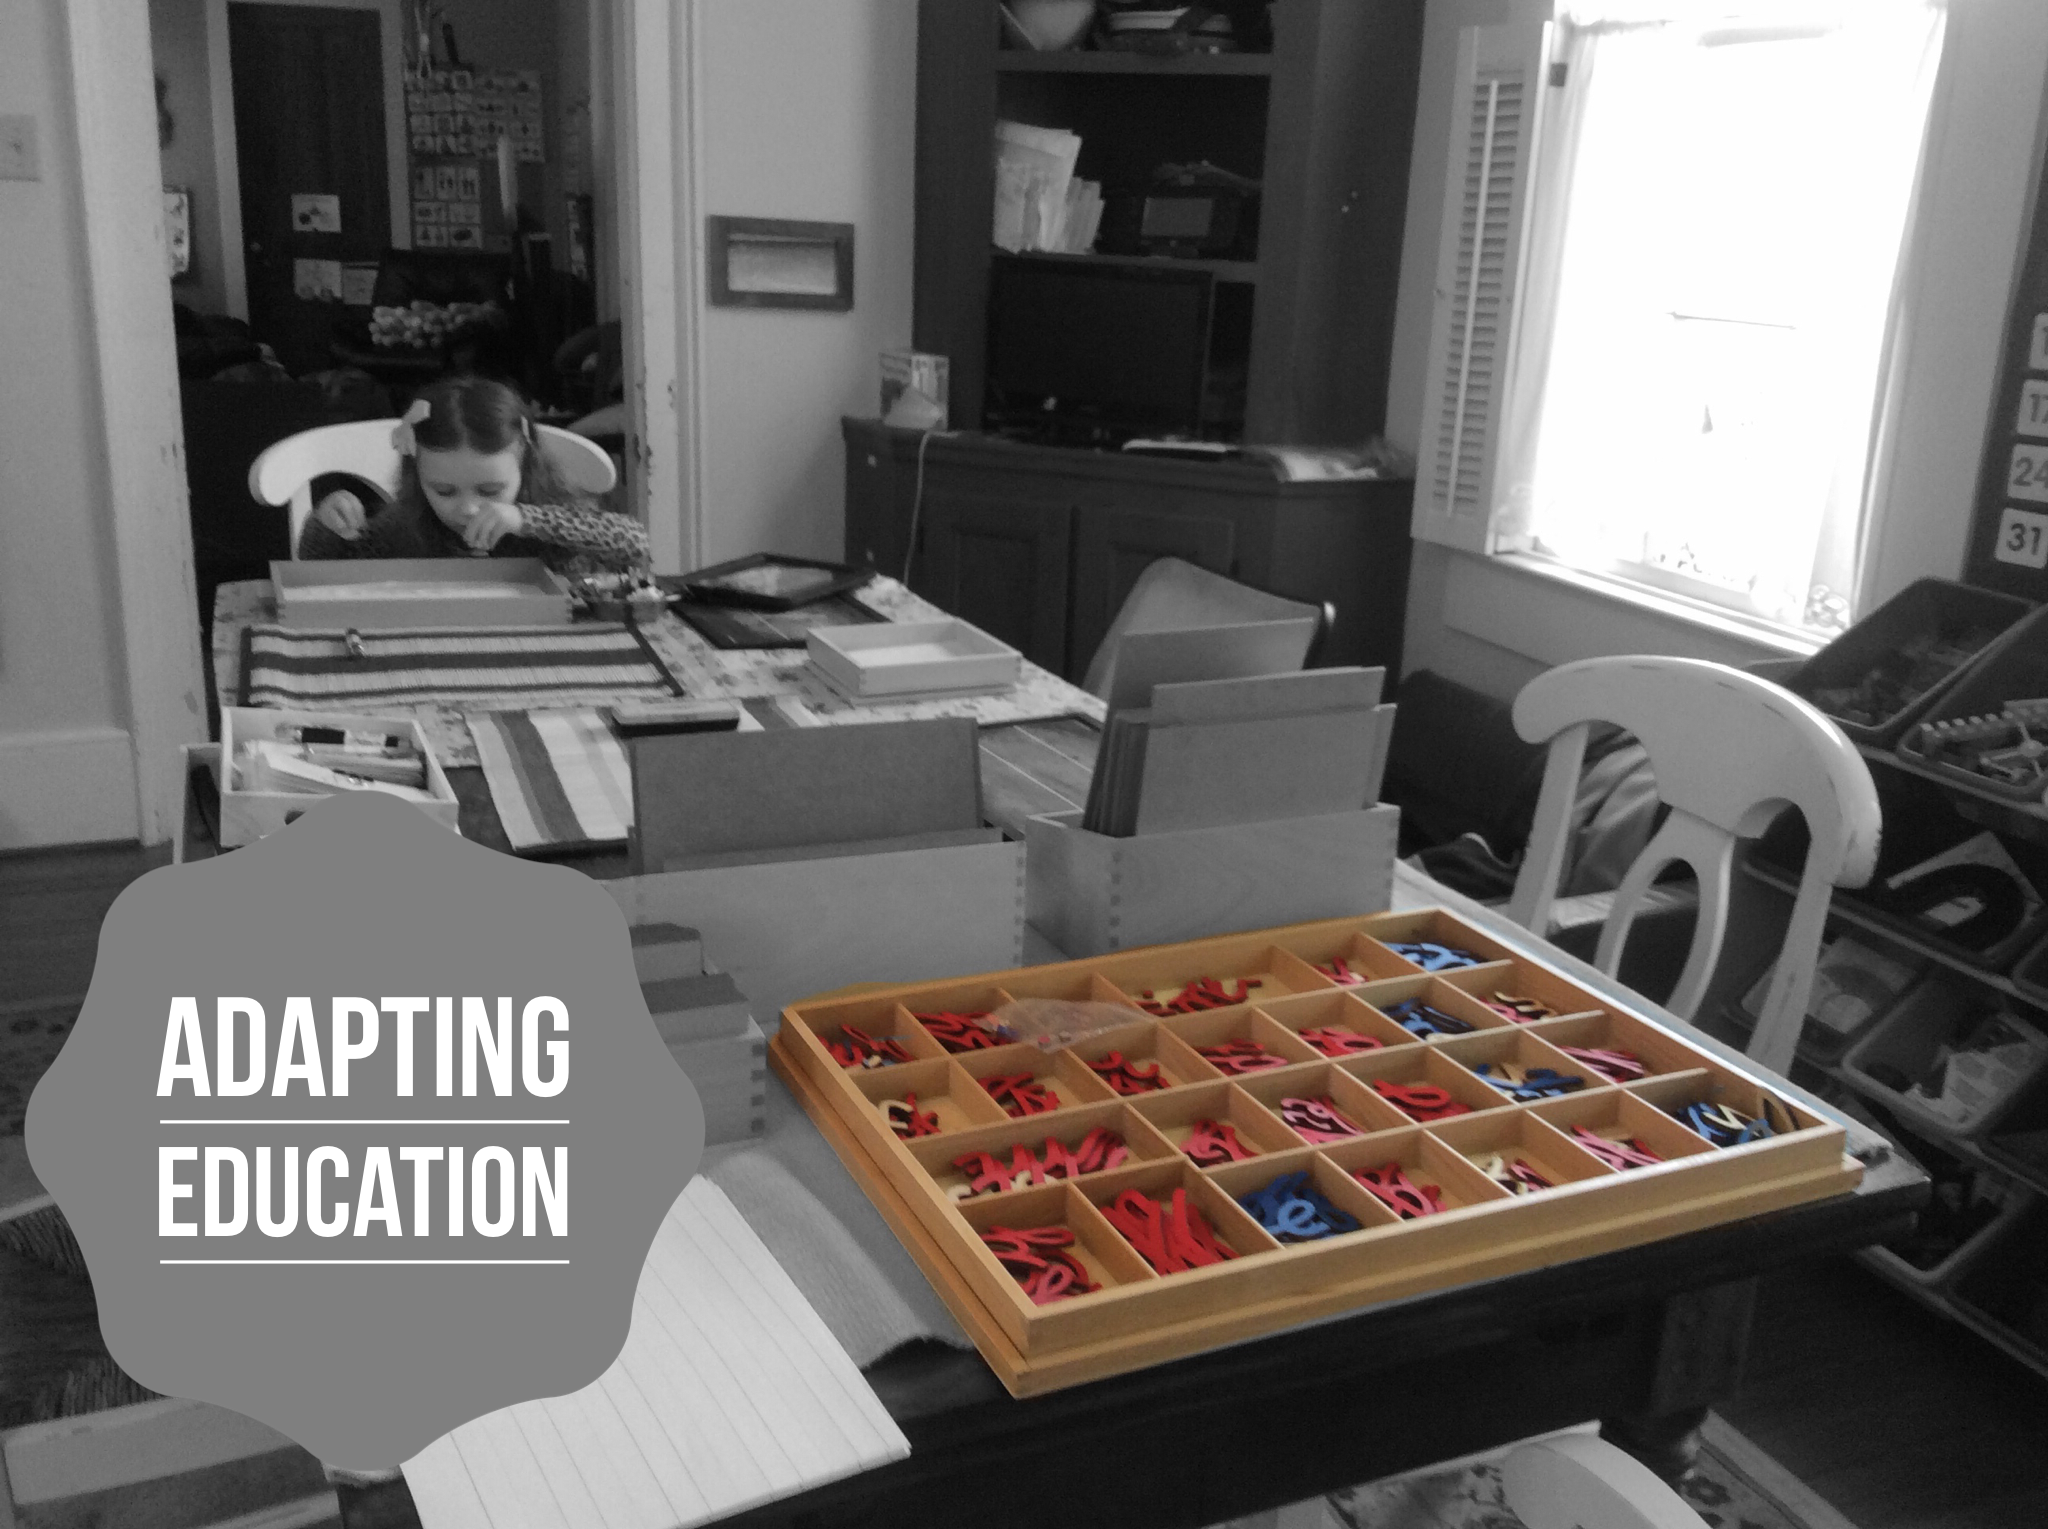 Adapting Education